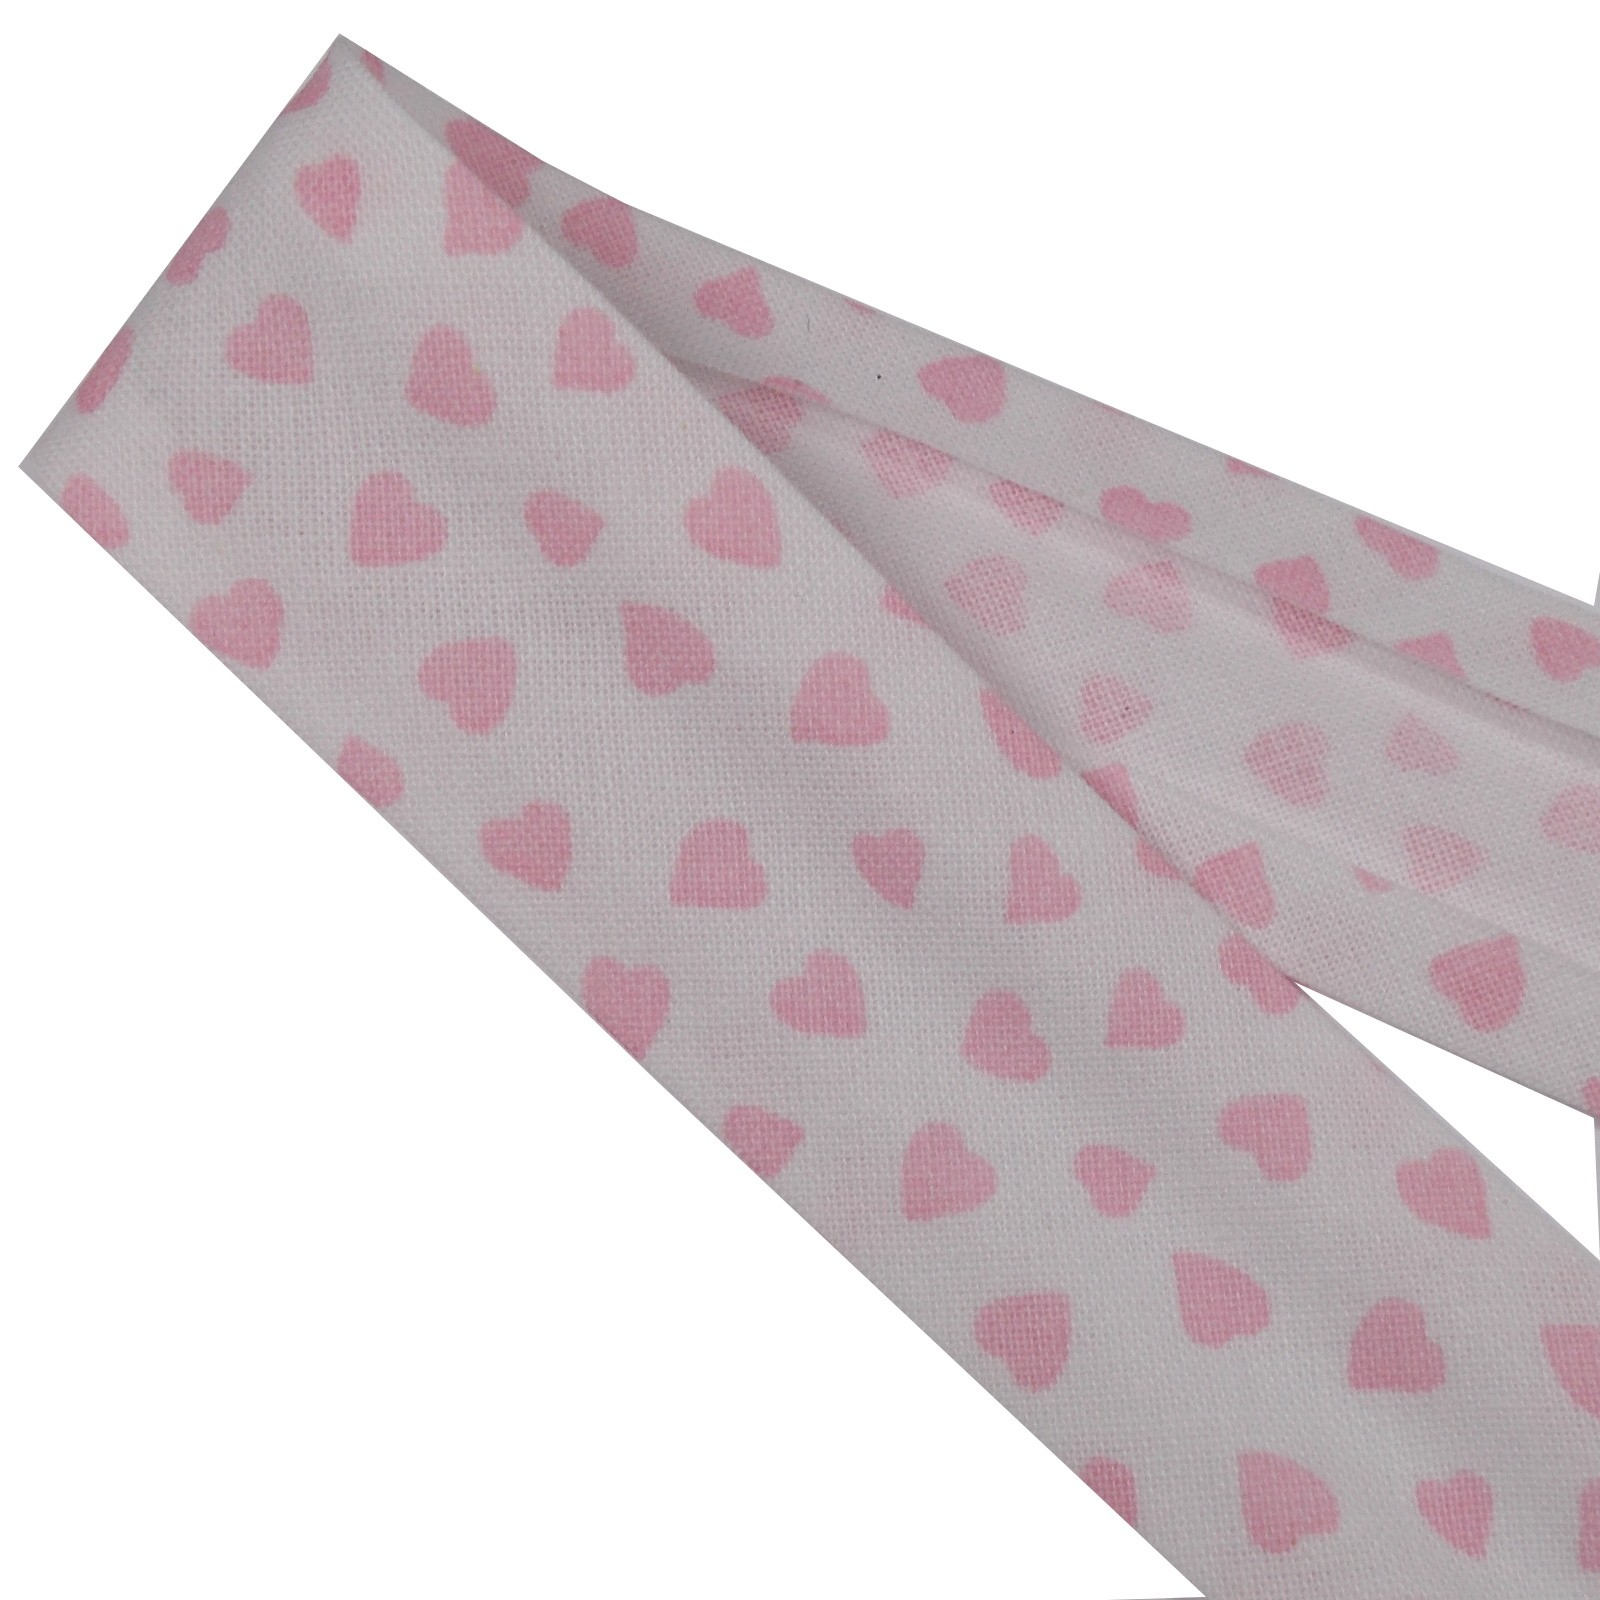 Bias Binding Patterned Cotton 25mm White with Pink Hearts 3 metre length